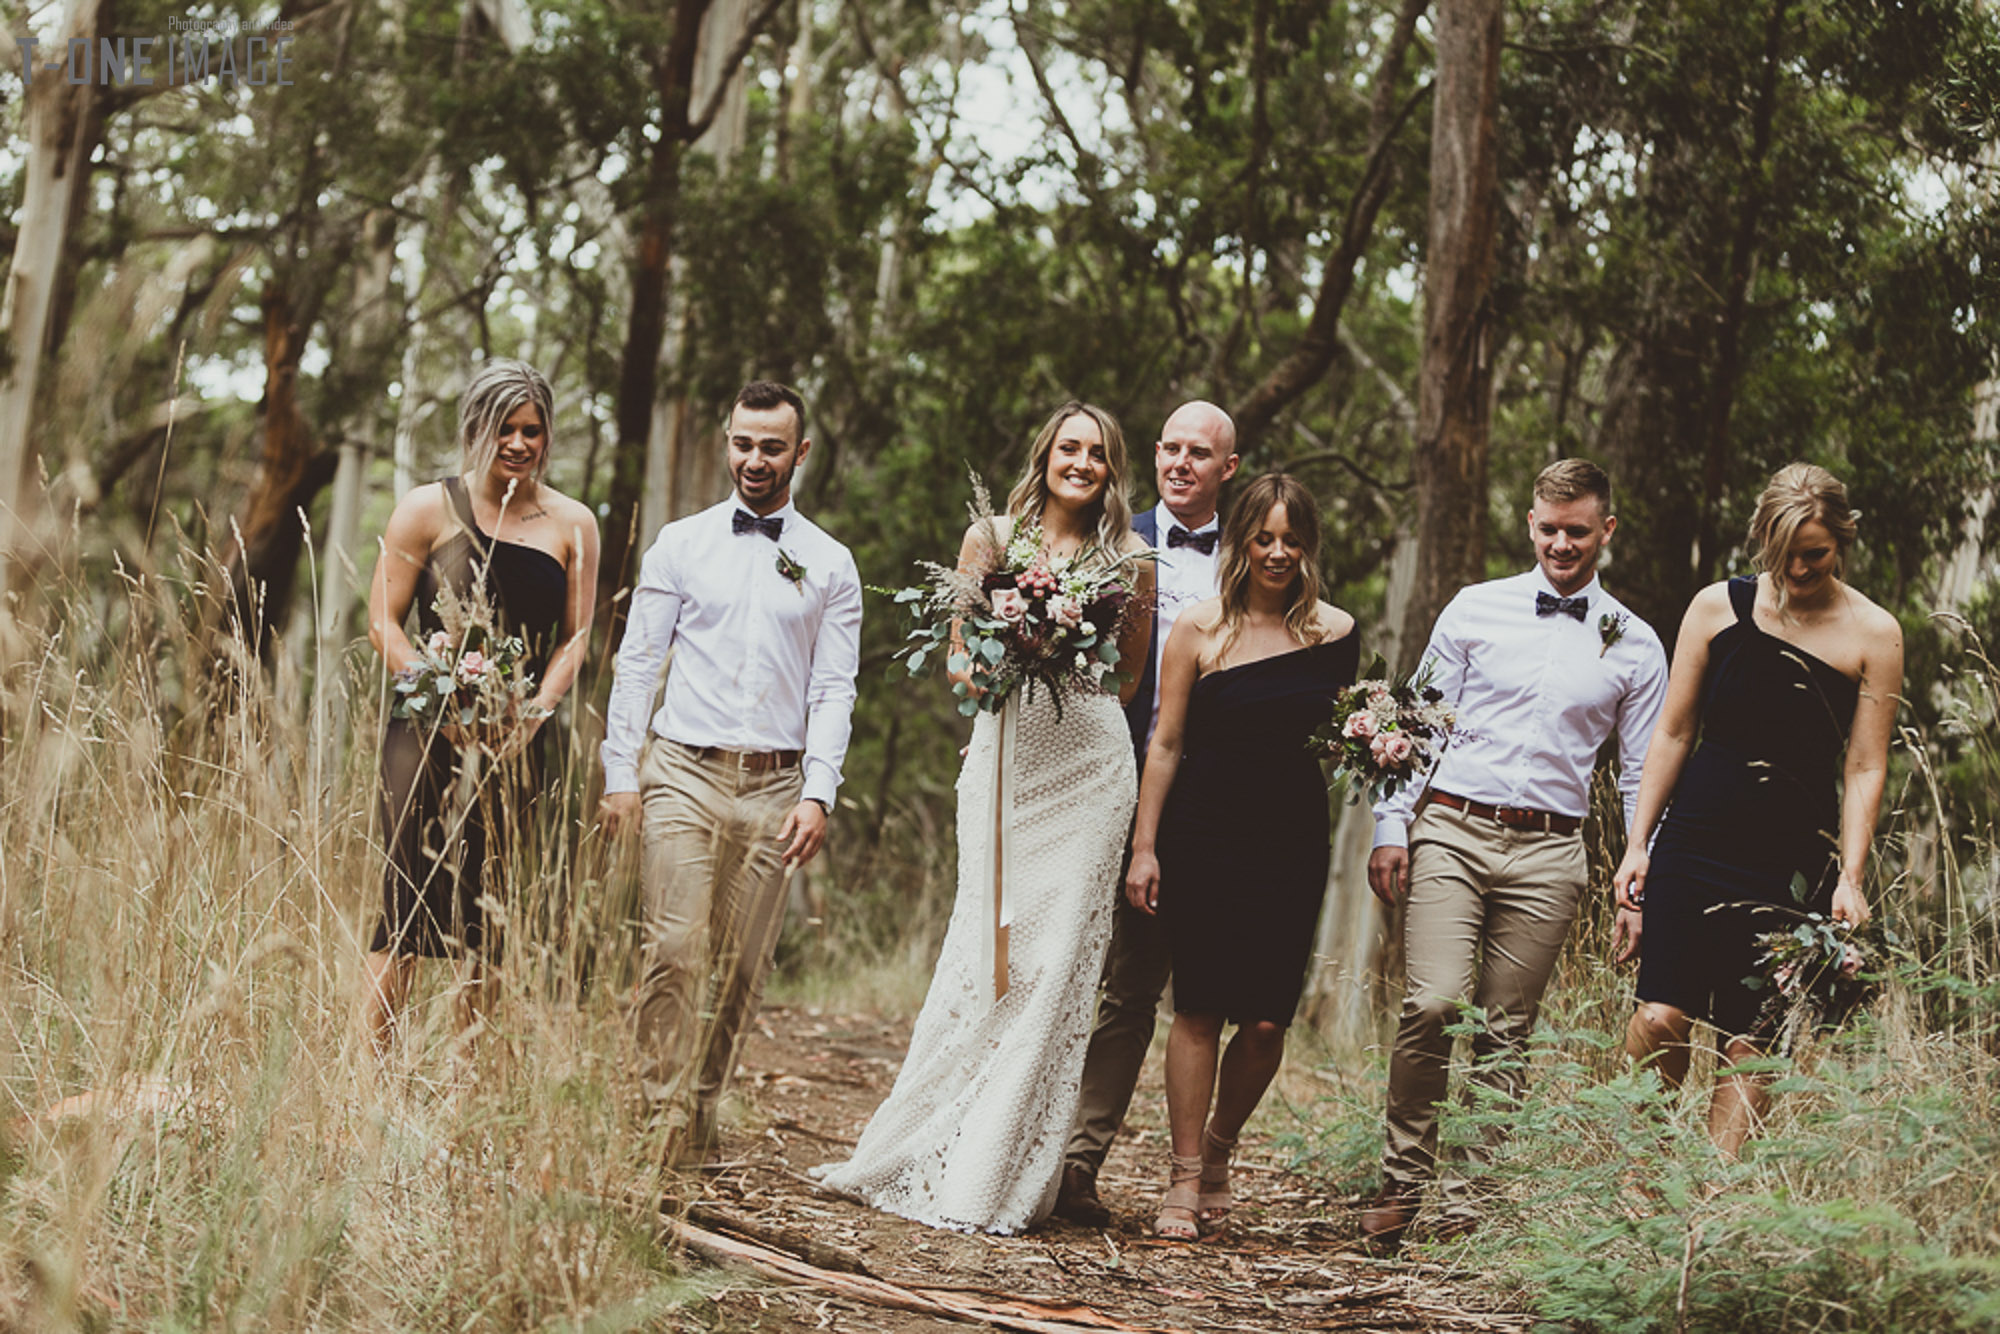 Melbourne-Sydney-wedding-photograph-Trentham-eo-53.jpg